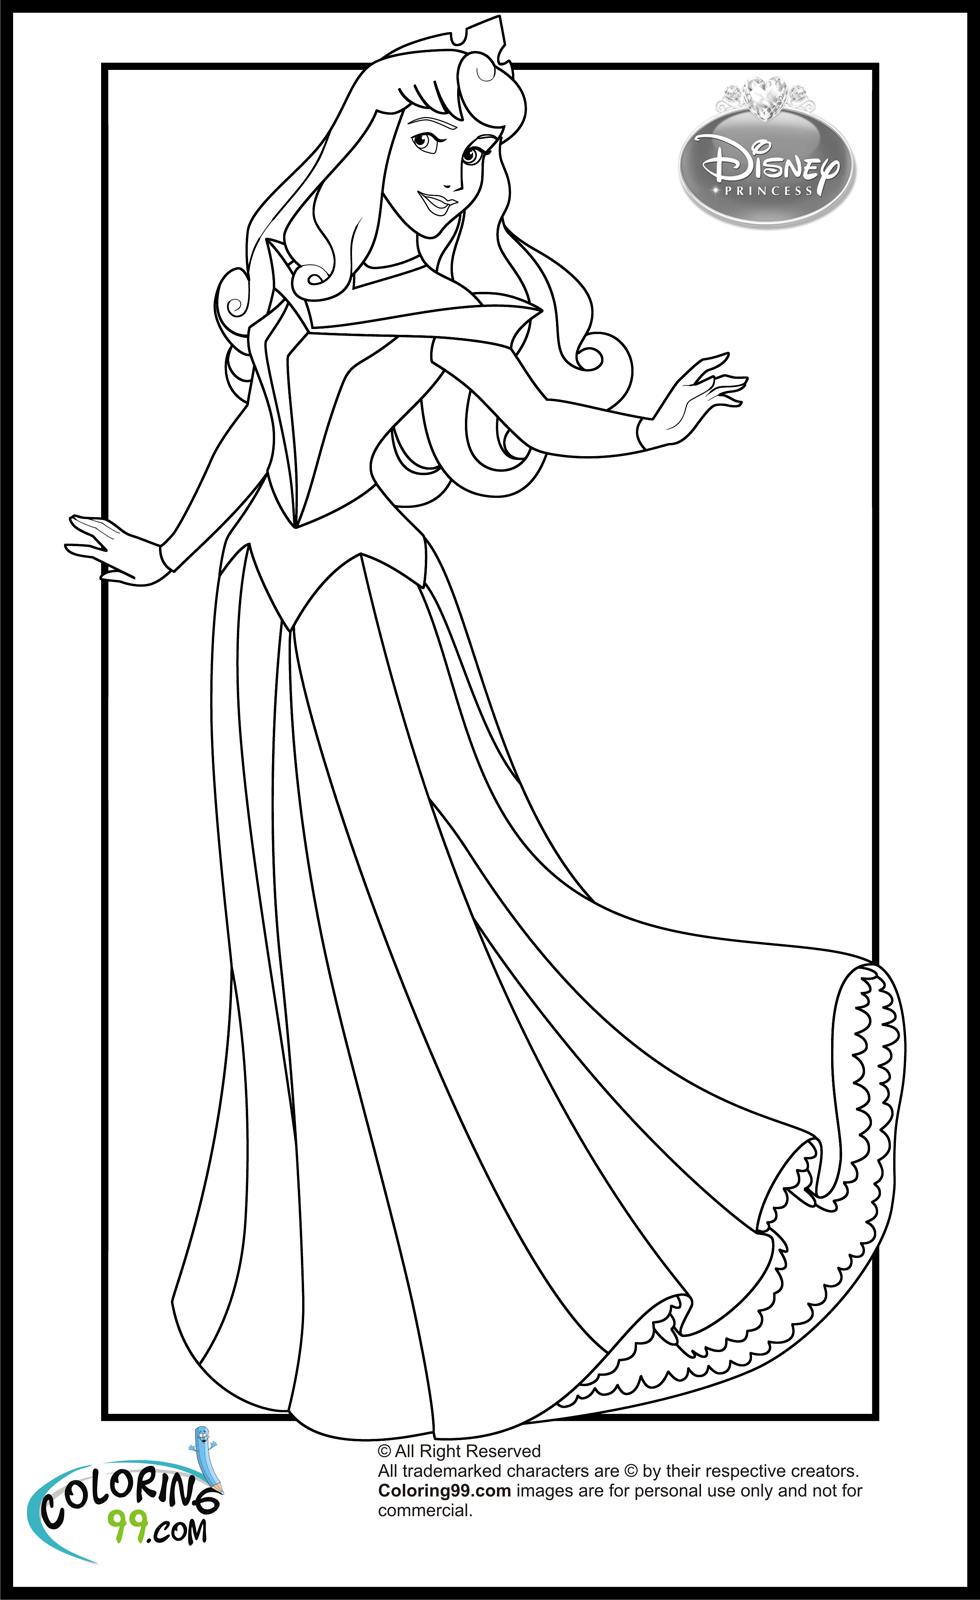 coloring pictures disney disney princess coloring pages team colors coloring pictures disney